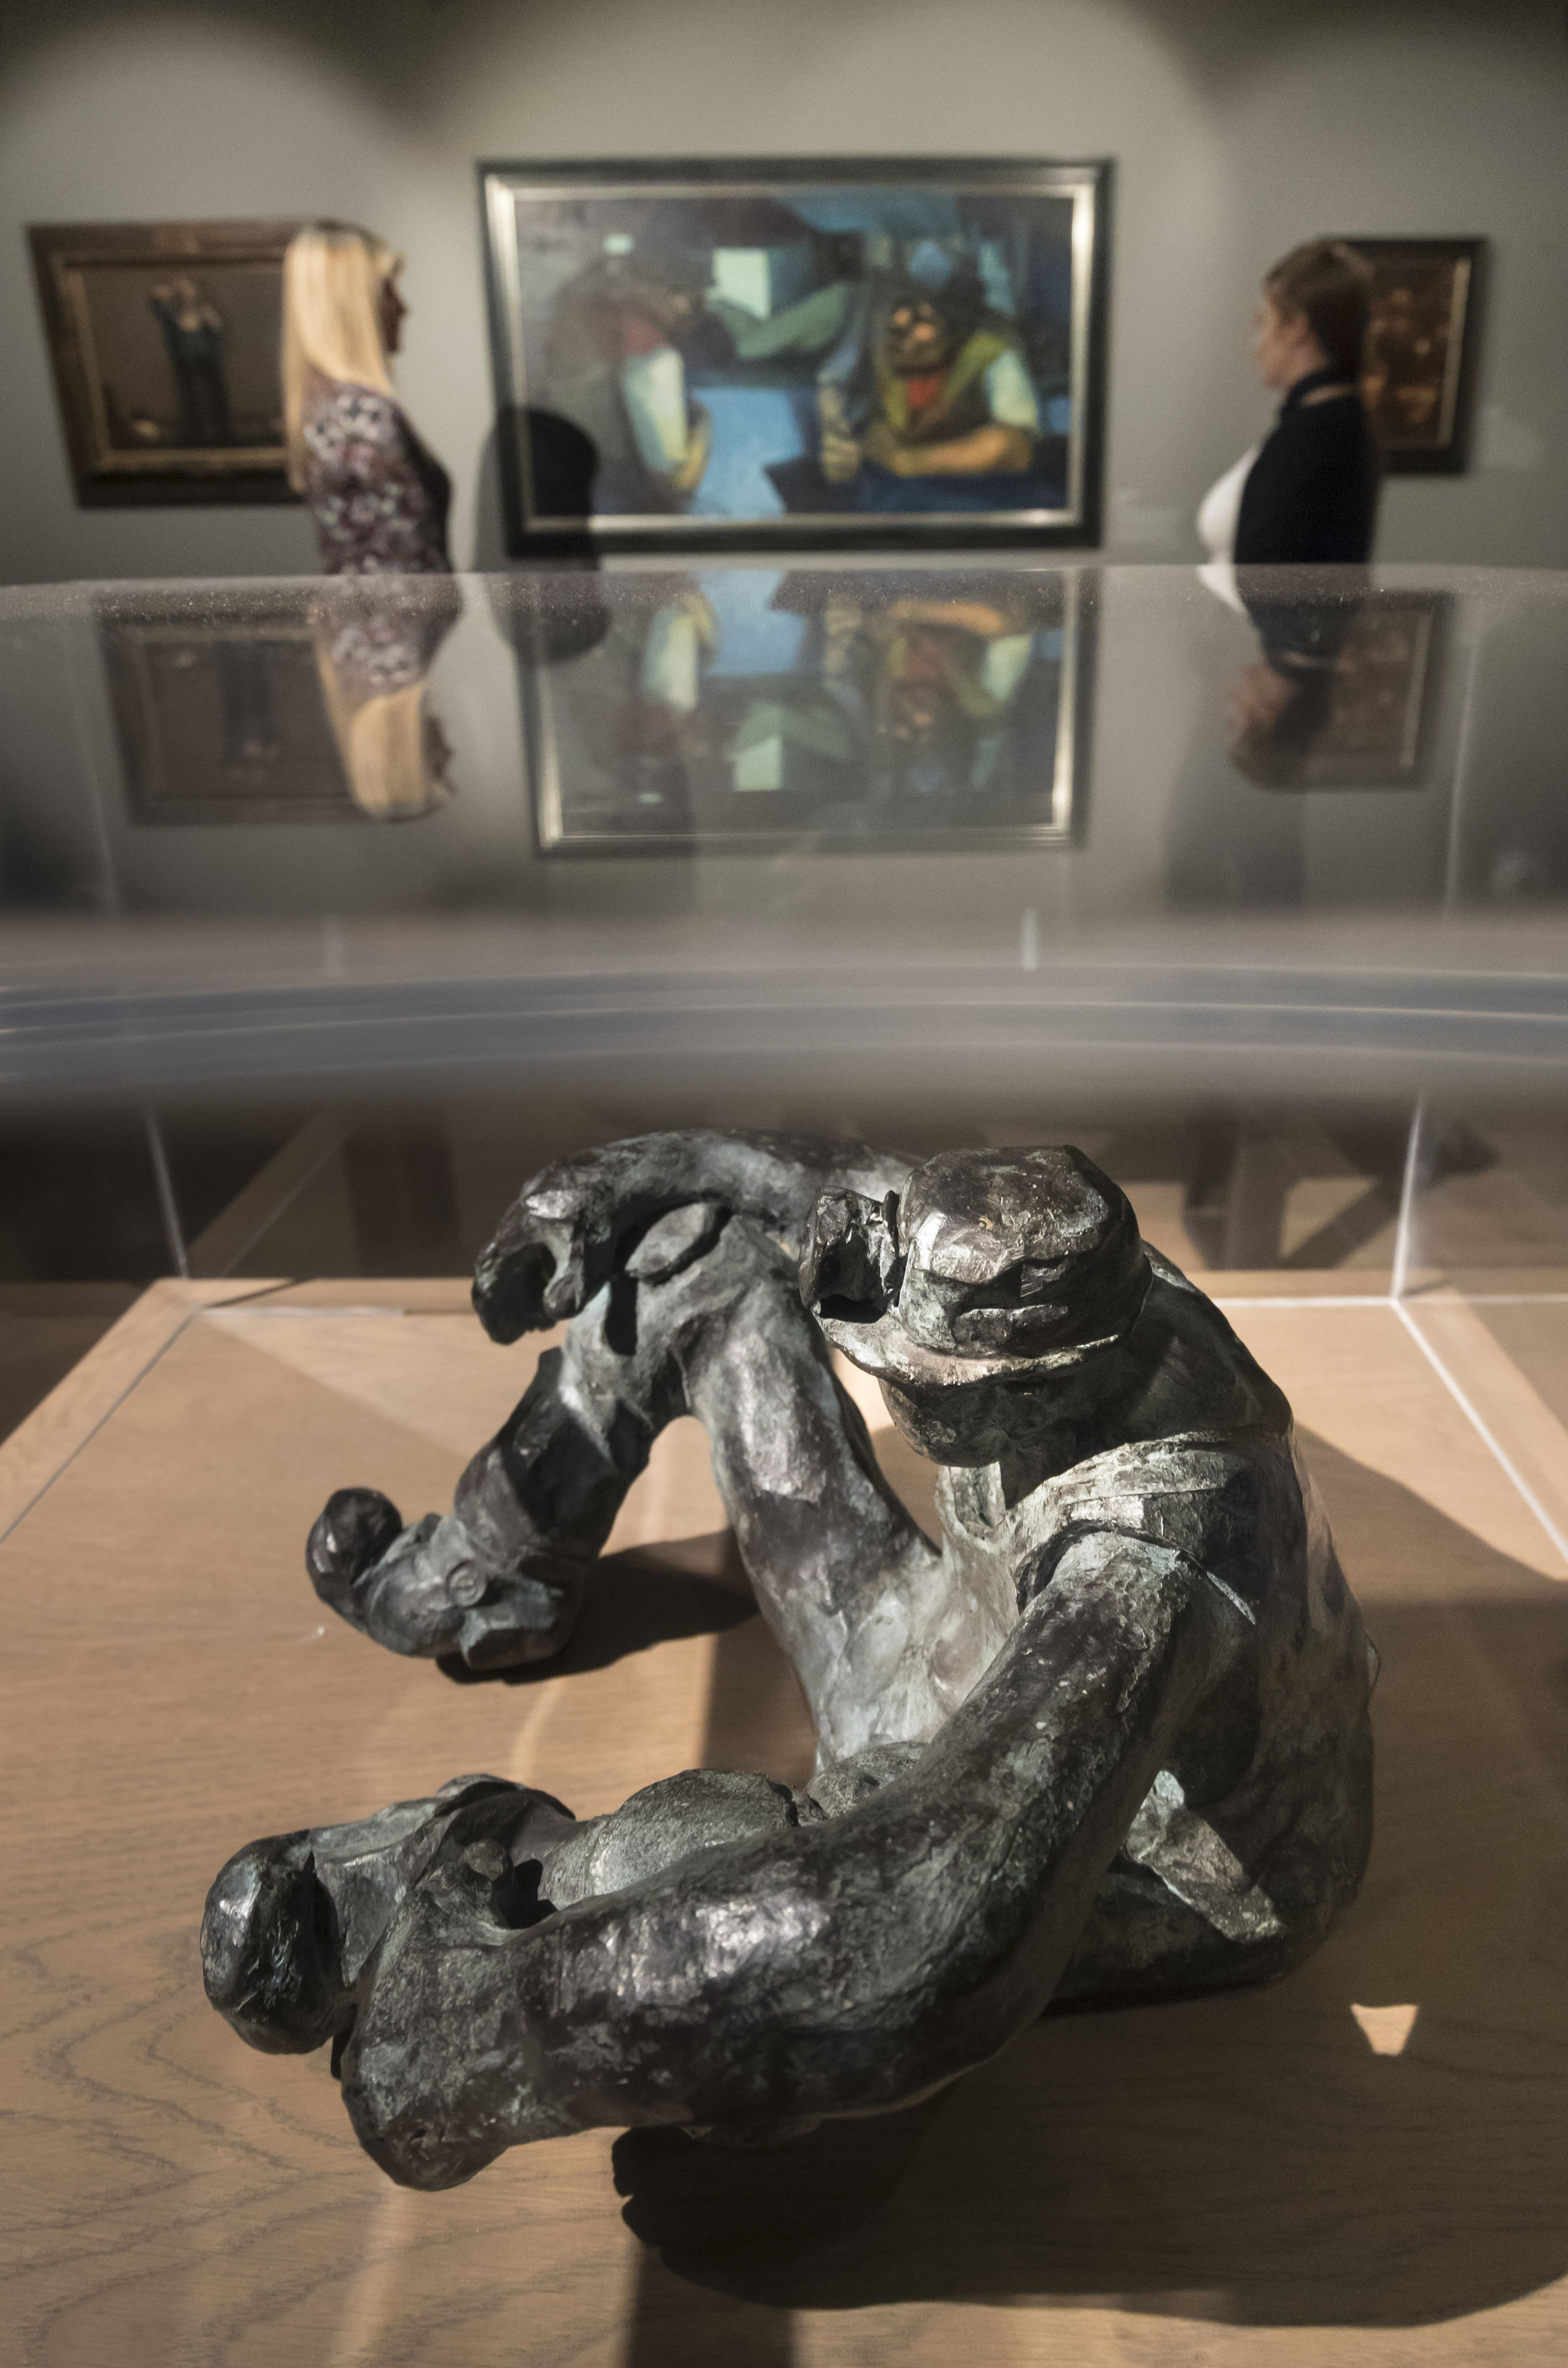 HISTORY: A bronze sculpture titled Miner by artist Alistair Brookes at the Mining Art Gallery Picture: DANNY LAWSON/PA WIRE